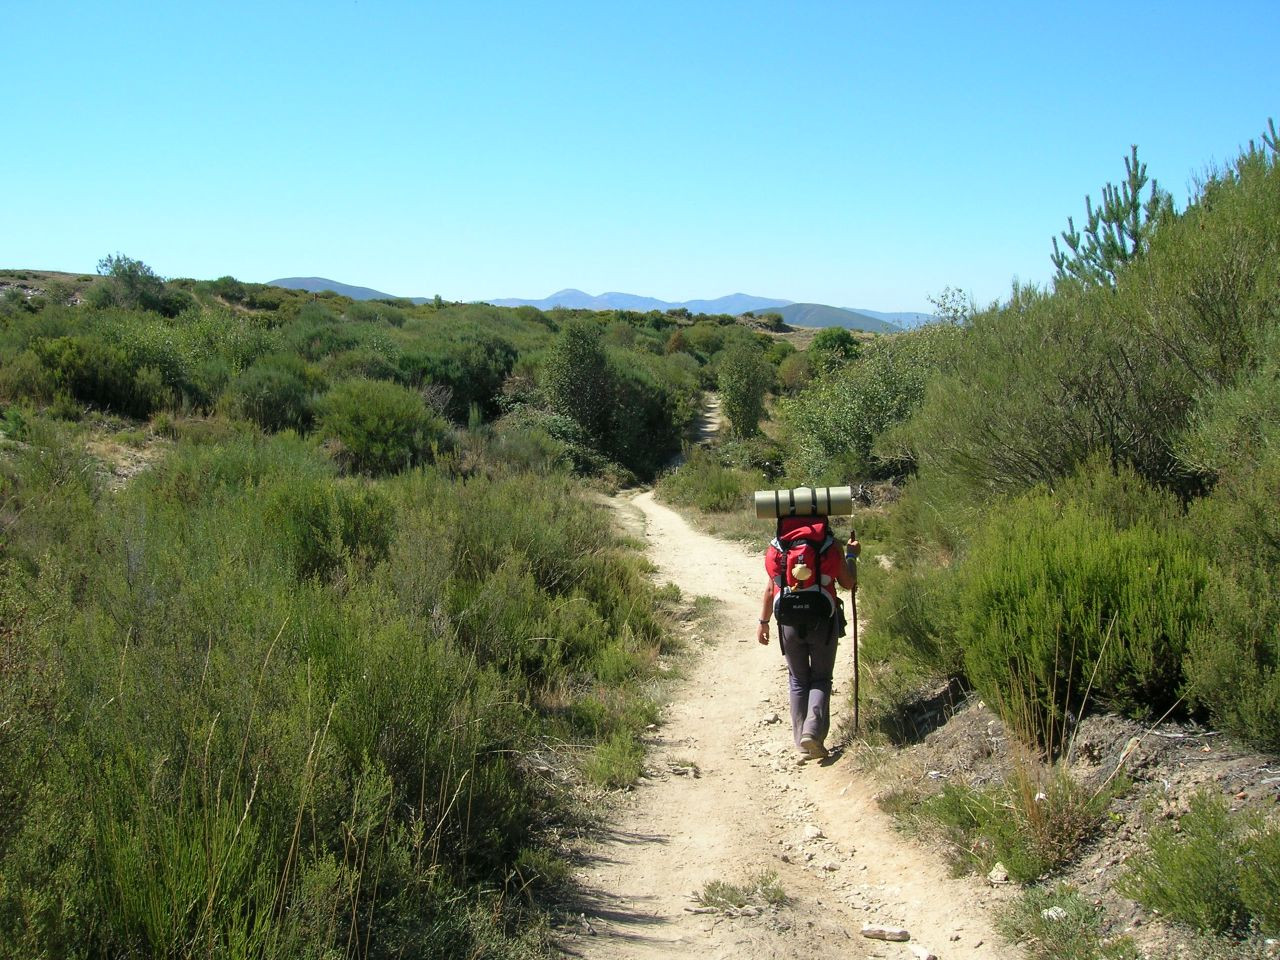 Pilgrim walking through a path in Manjarín